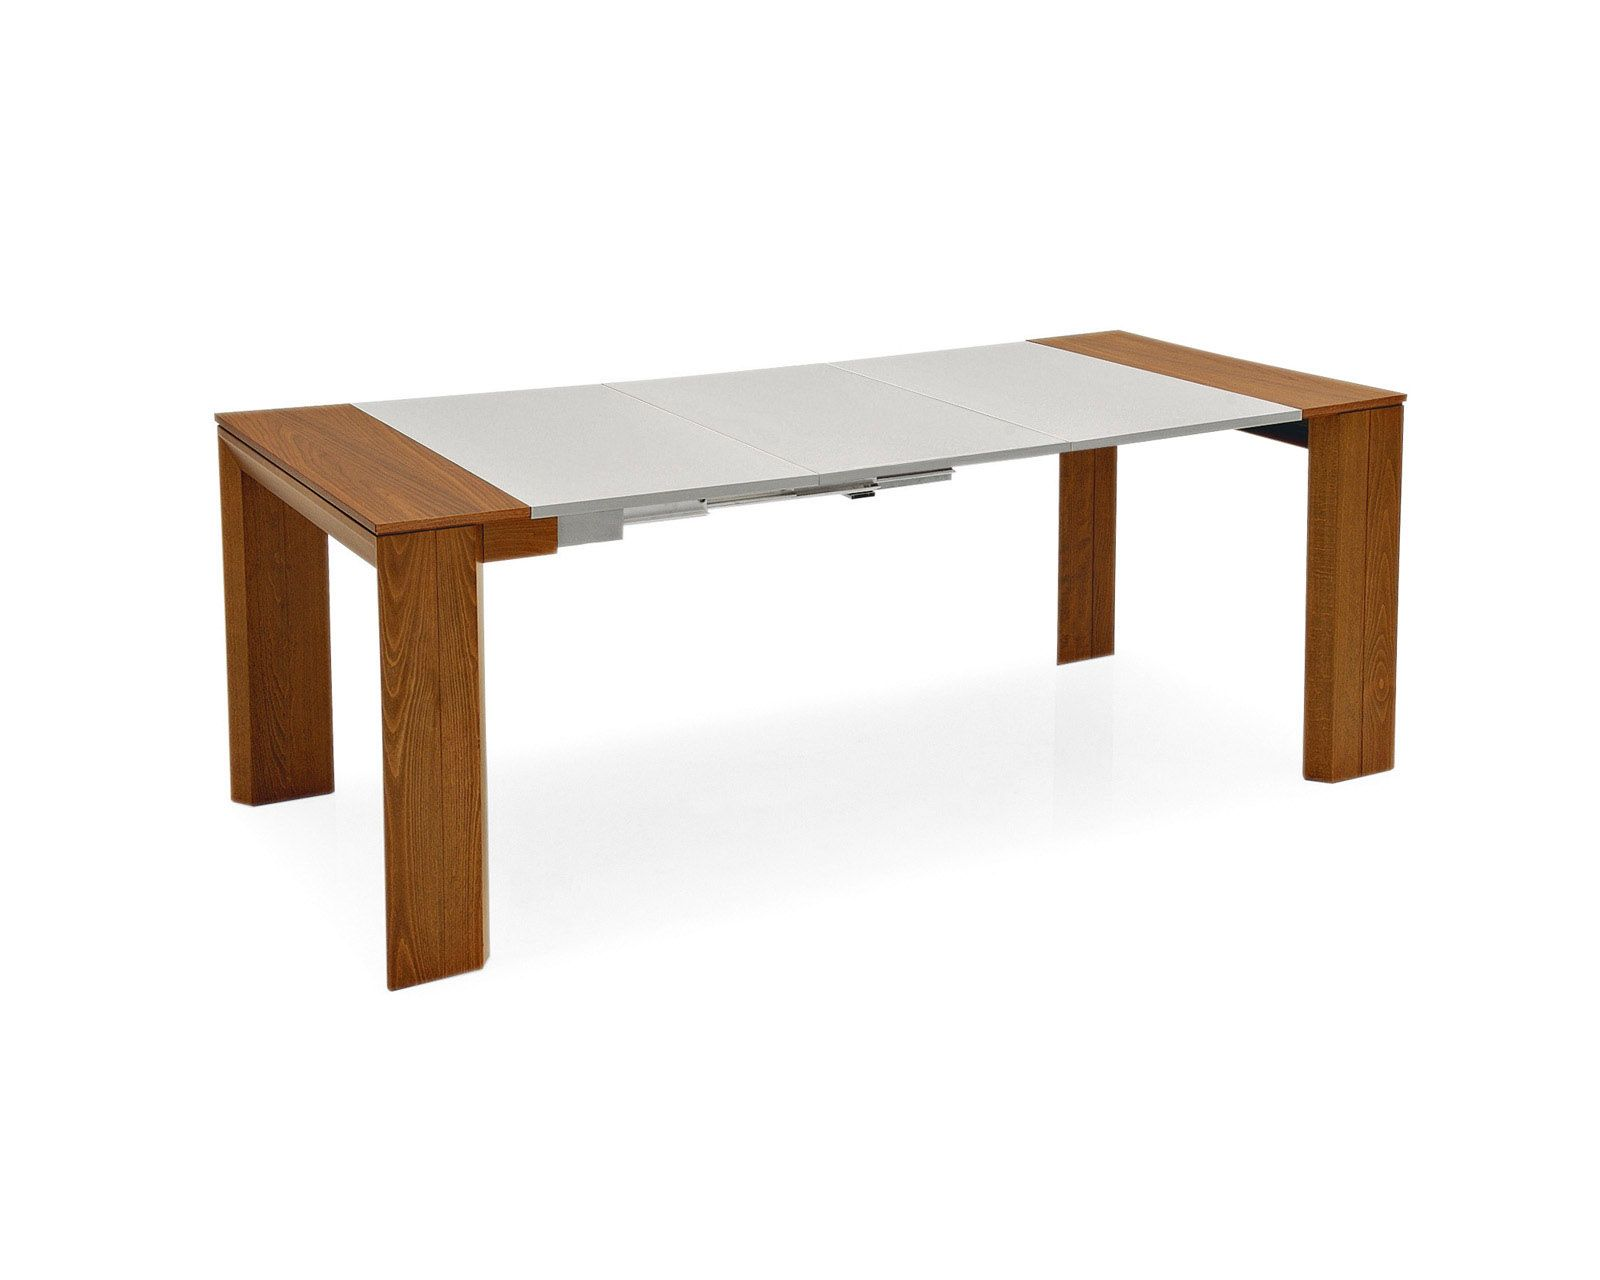 Calligaris Consolle Mistery.Extendable Console Table Mistery Cs 4046 Calligaris Home